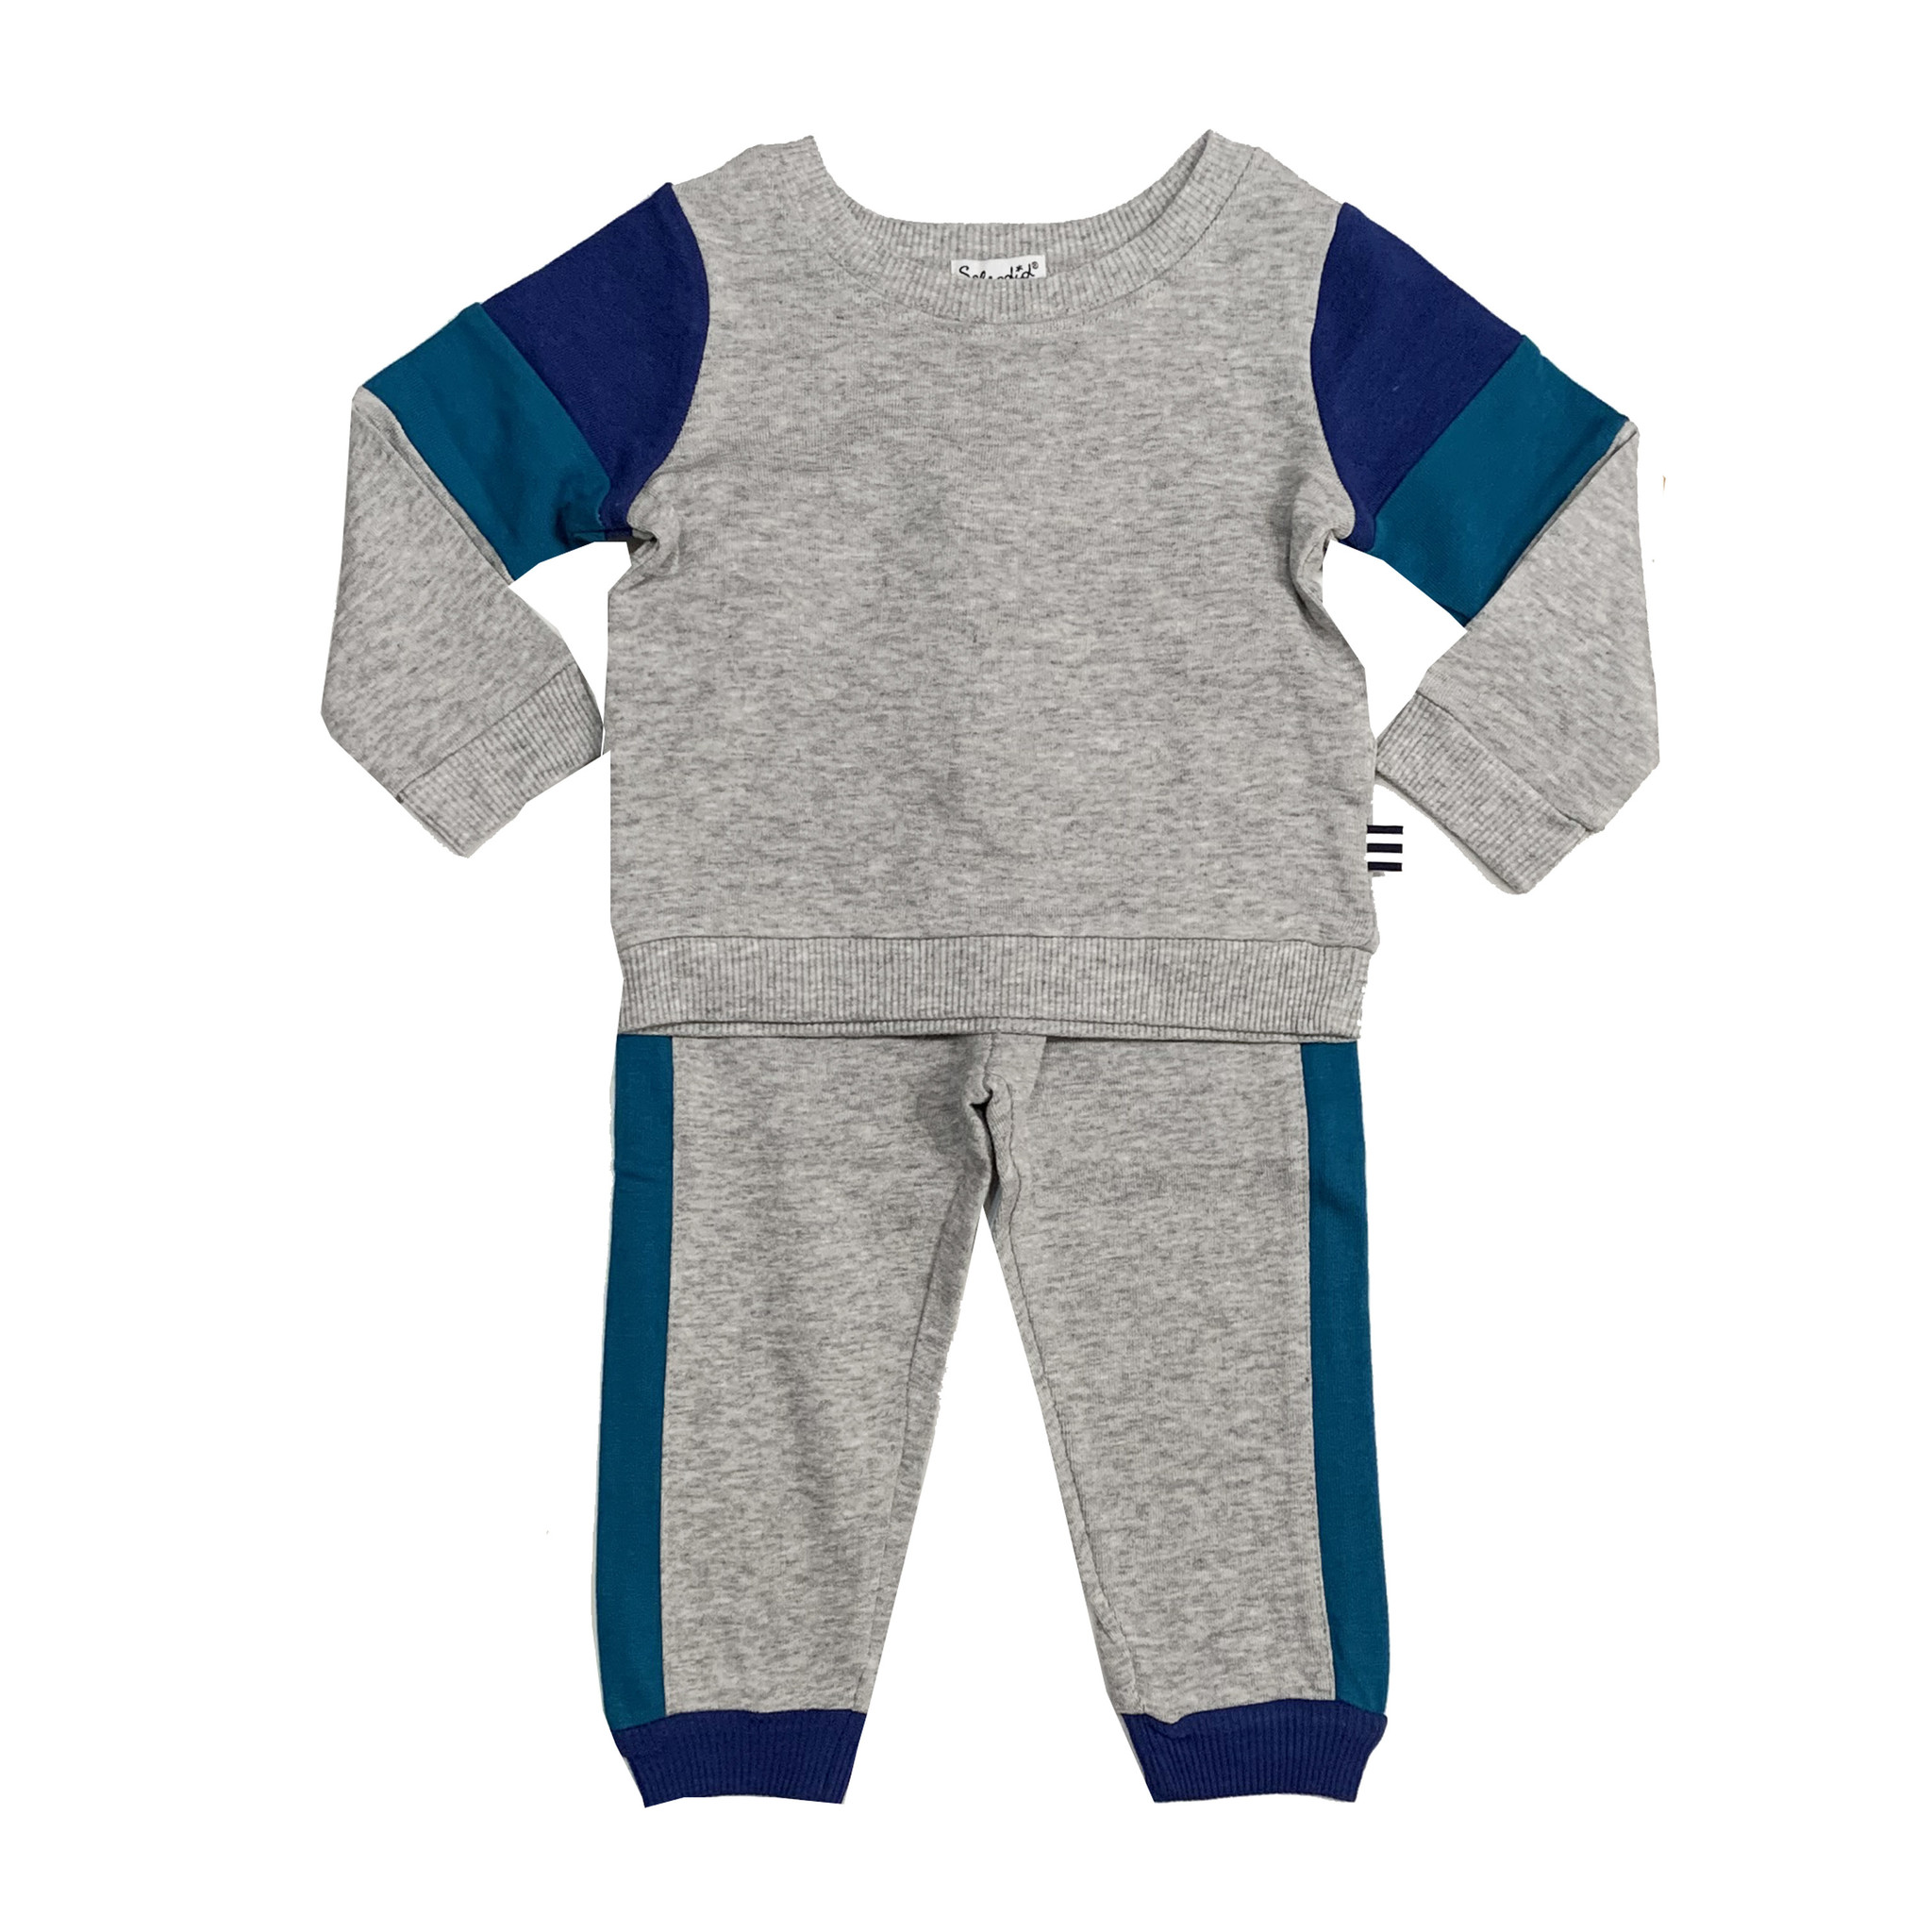 Splendid Grey & Blue Sweatsuit